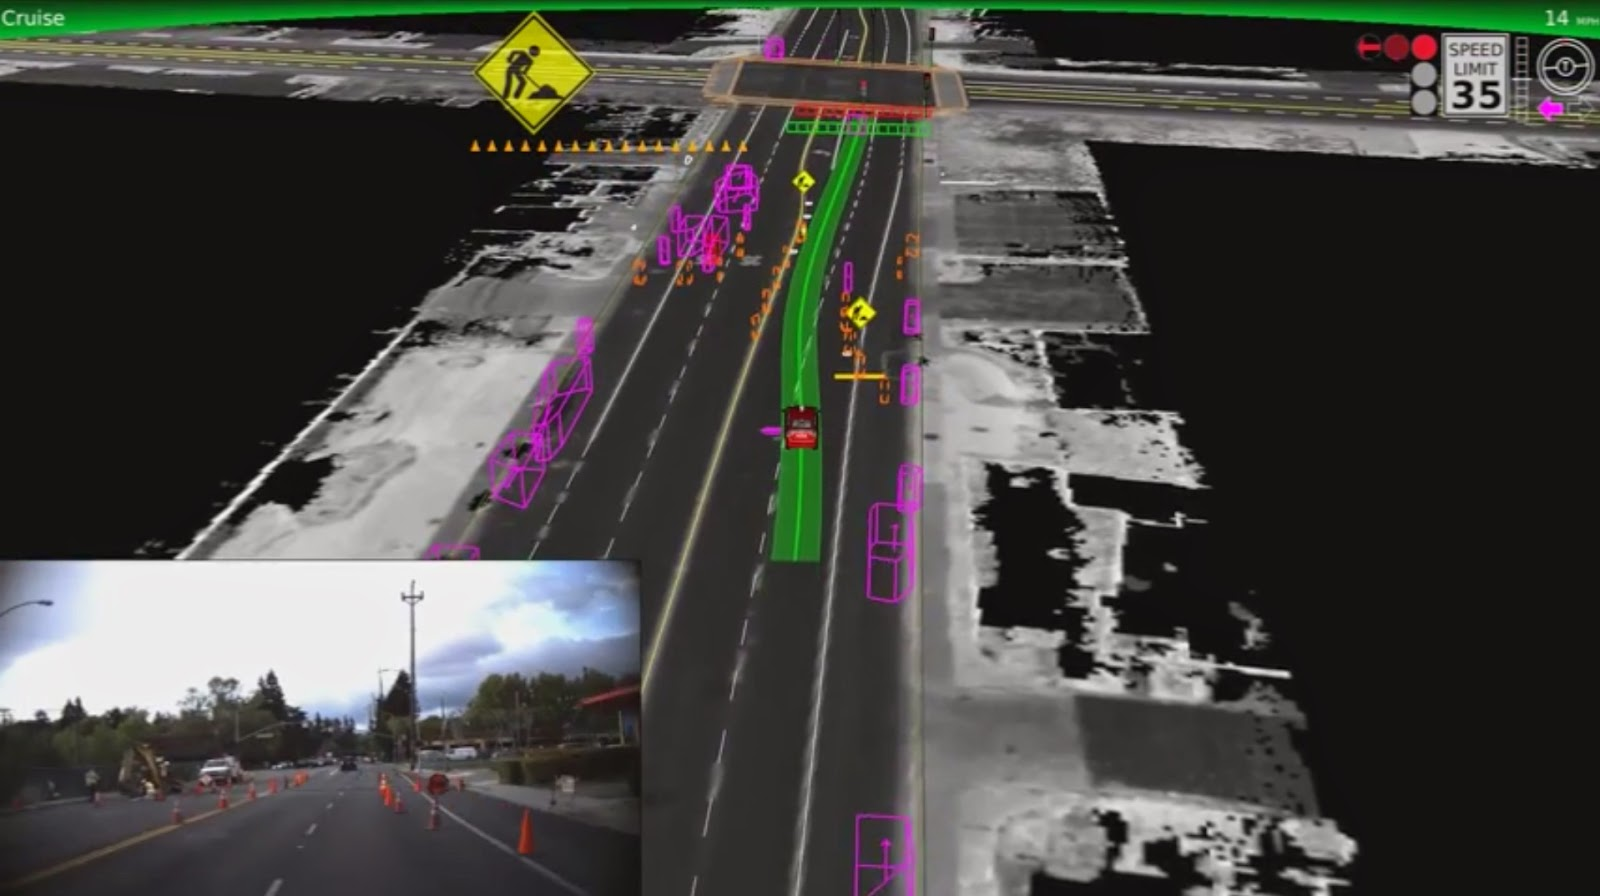 Google's self-driving car, navigating some road works